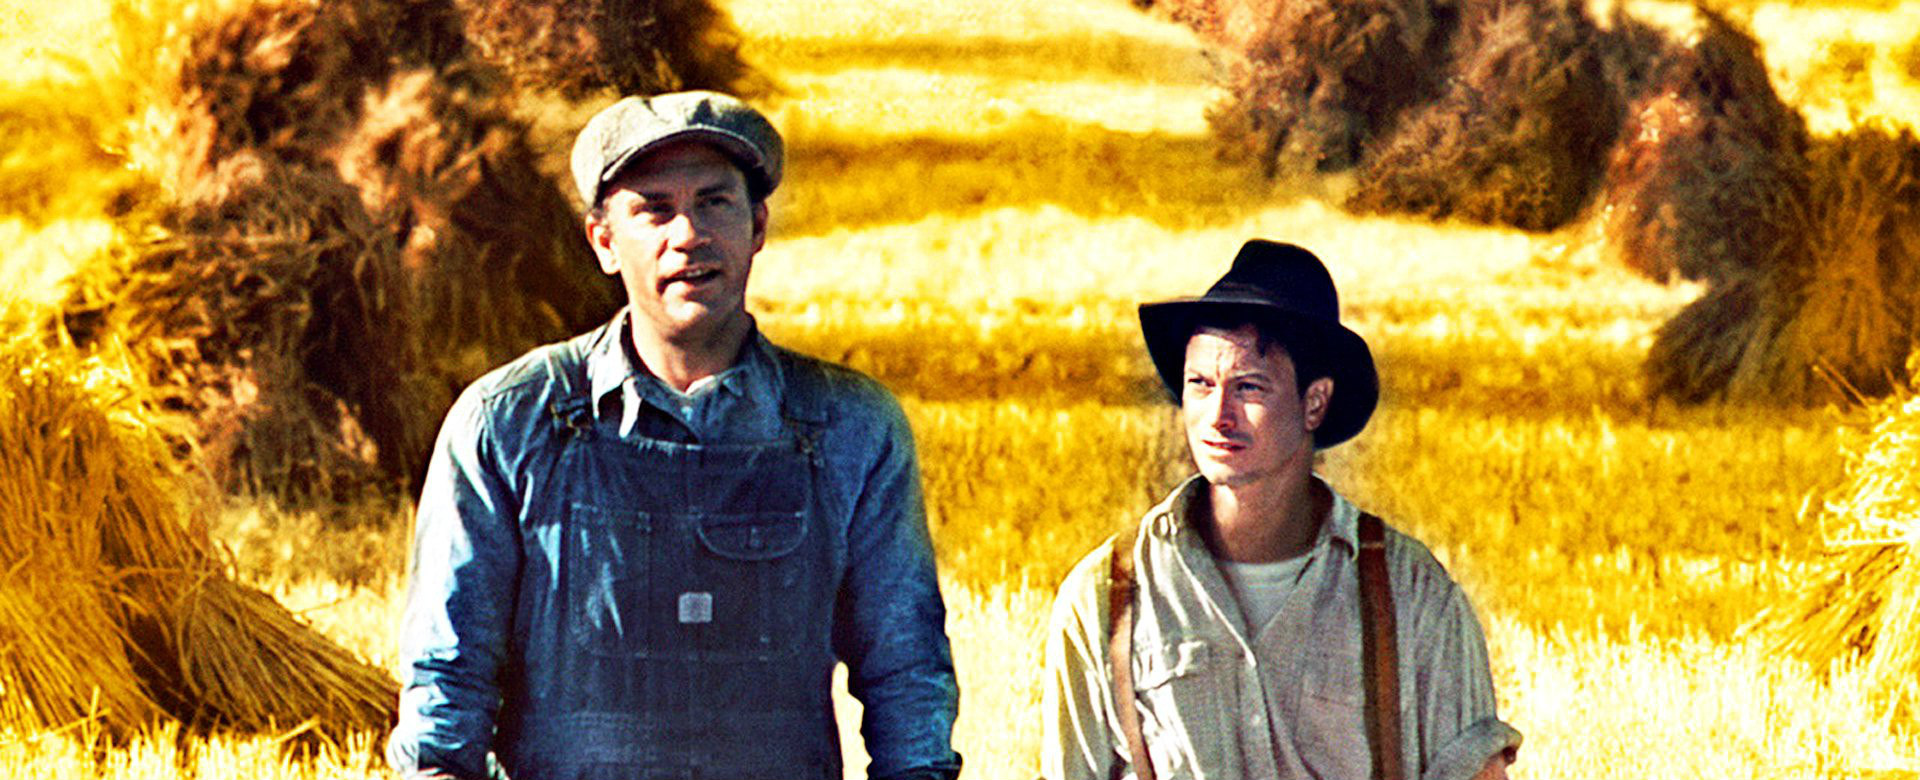 Of Mice and Men | John Steinbeck | Gary Sinise | Best Movie Podcasts